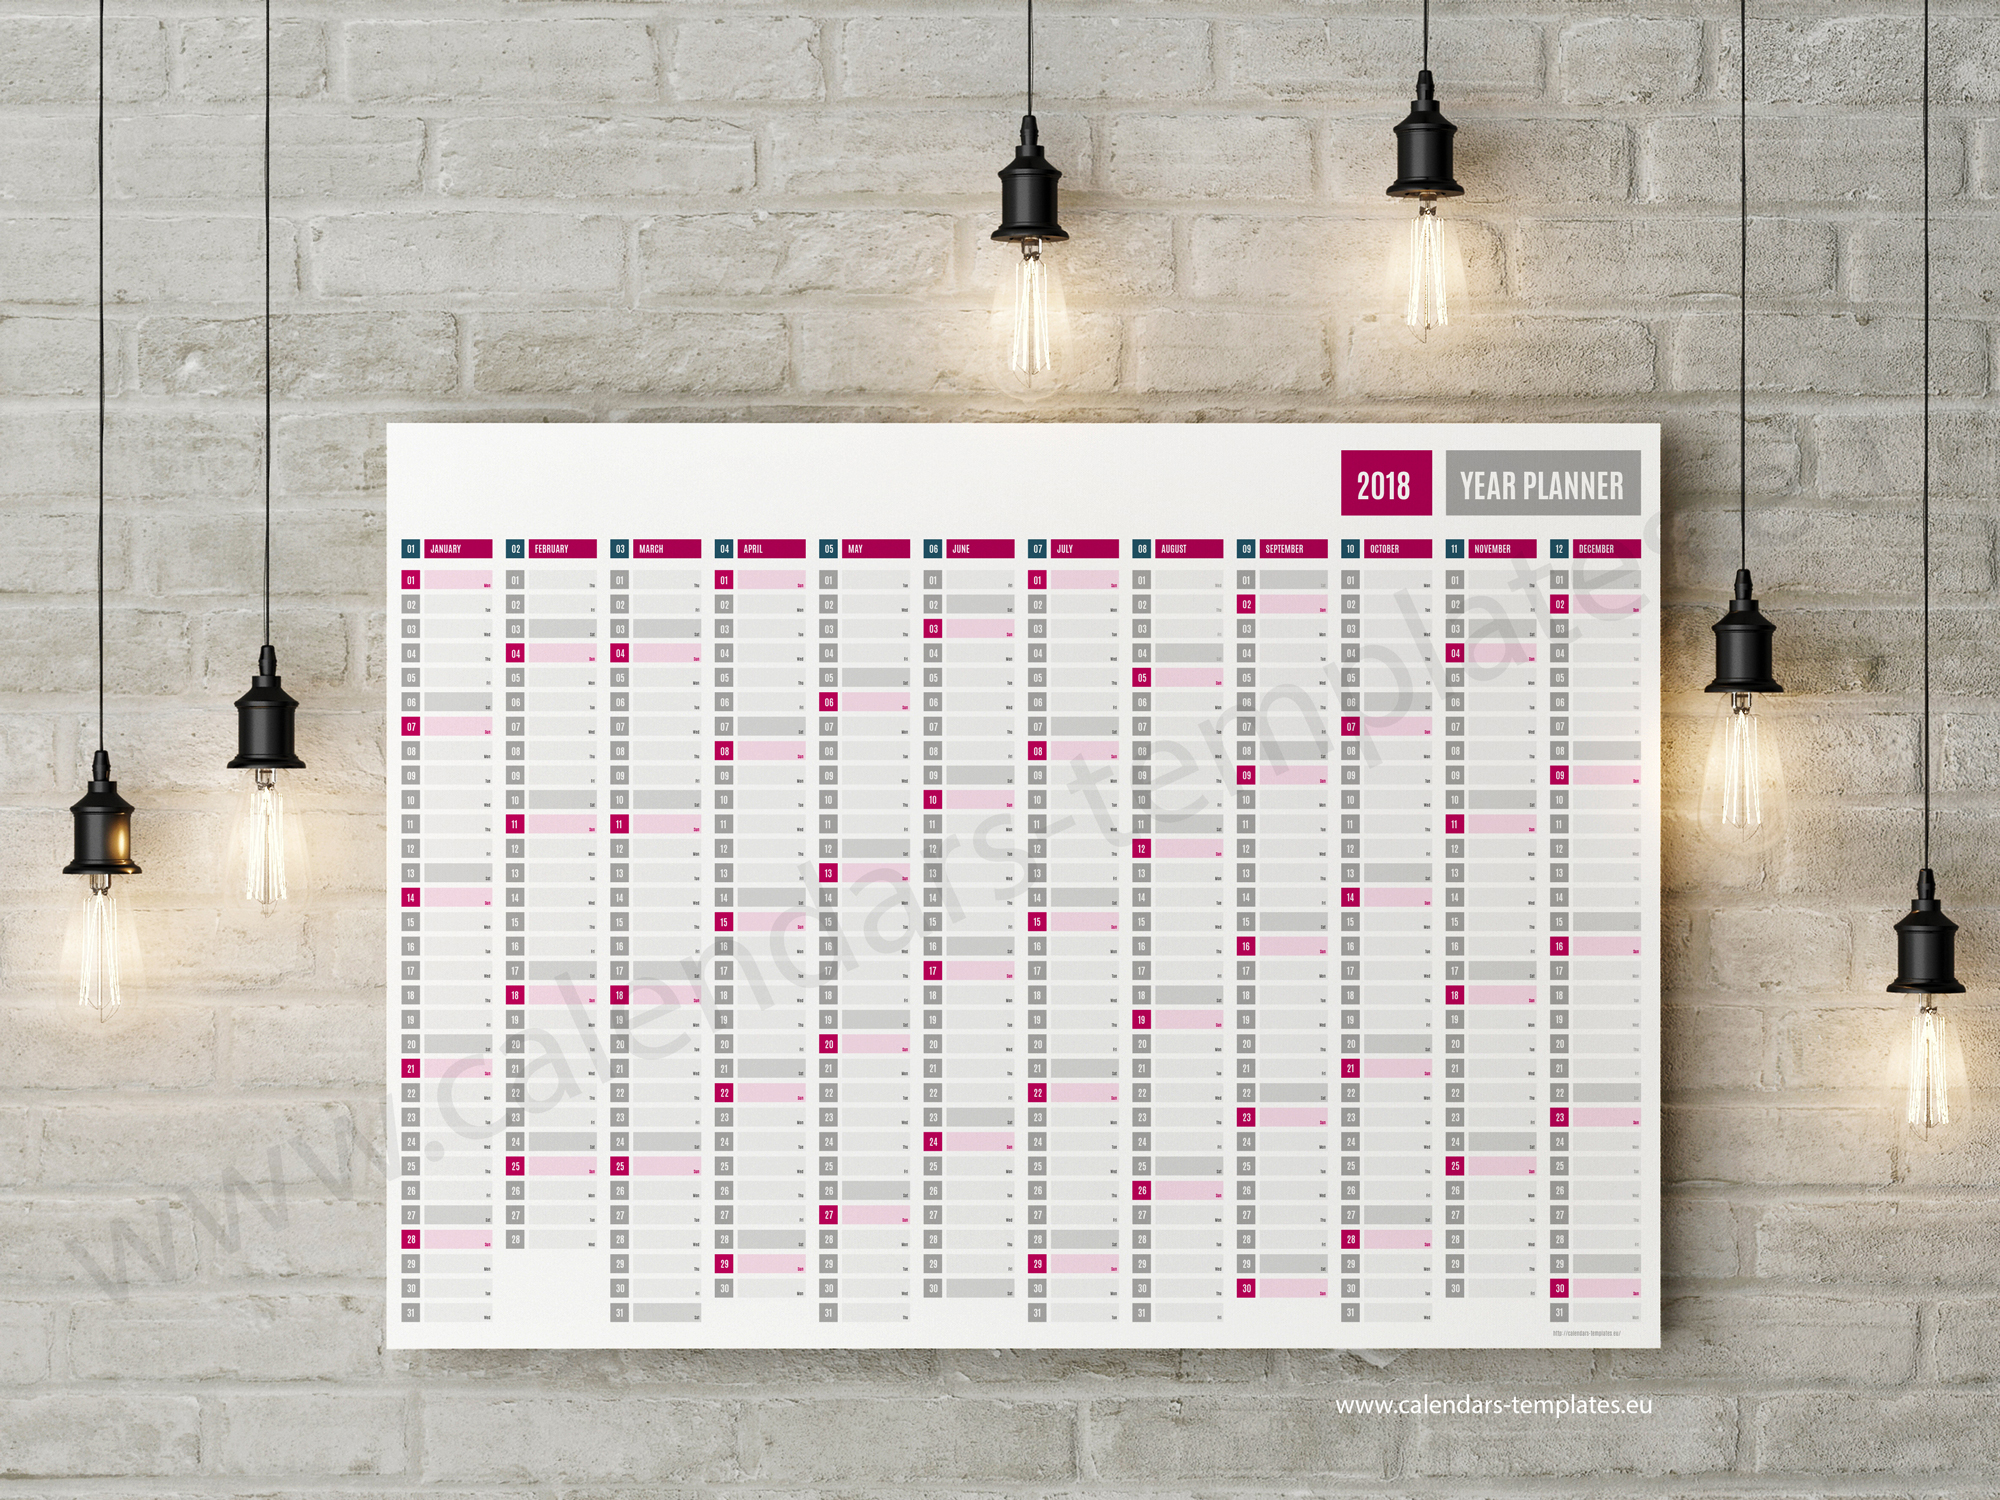 This is a twelve month free yearly planner, wall planner running from 1st January to 31st December This free yearly planner agenda consists of 12 columns one for each month of the year. Downloadable free yearly planner template in PDF format, A0, A1 A2, B0 and B1 size.